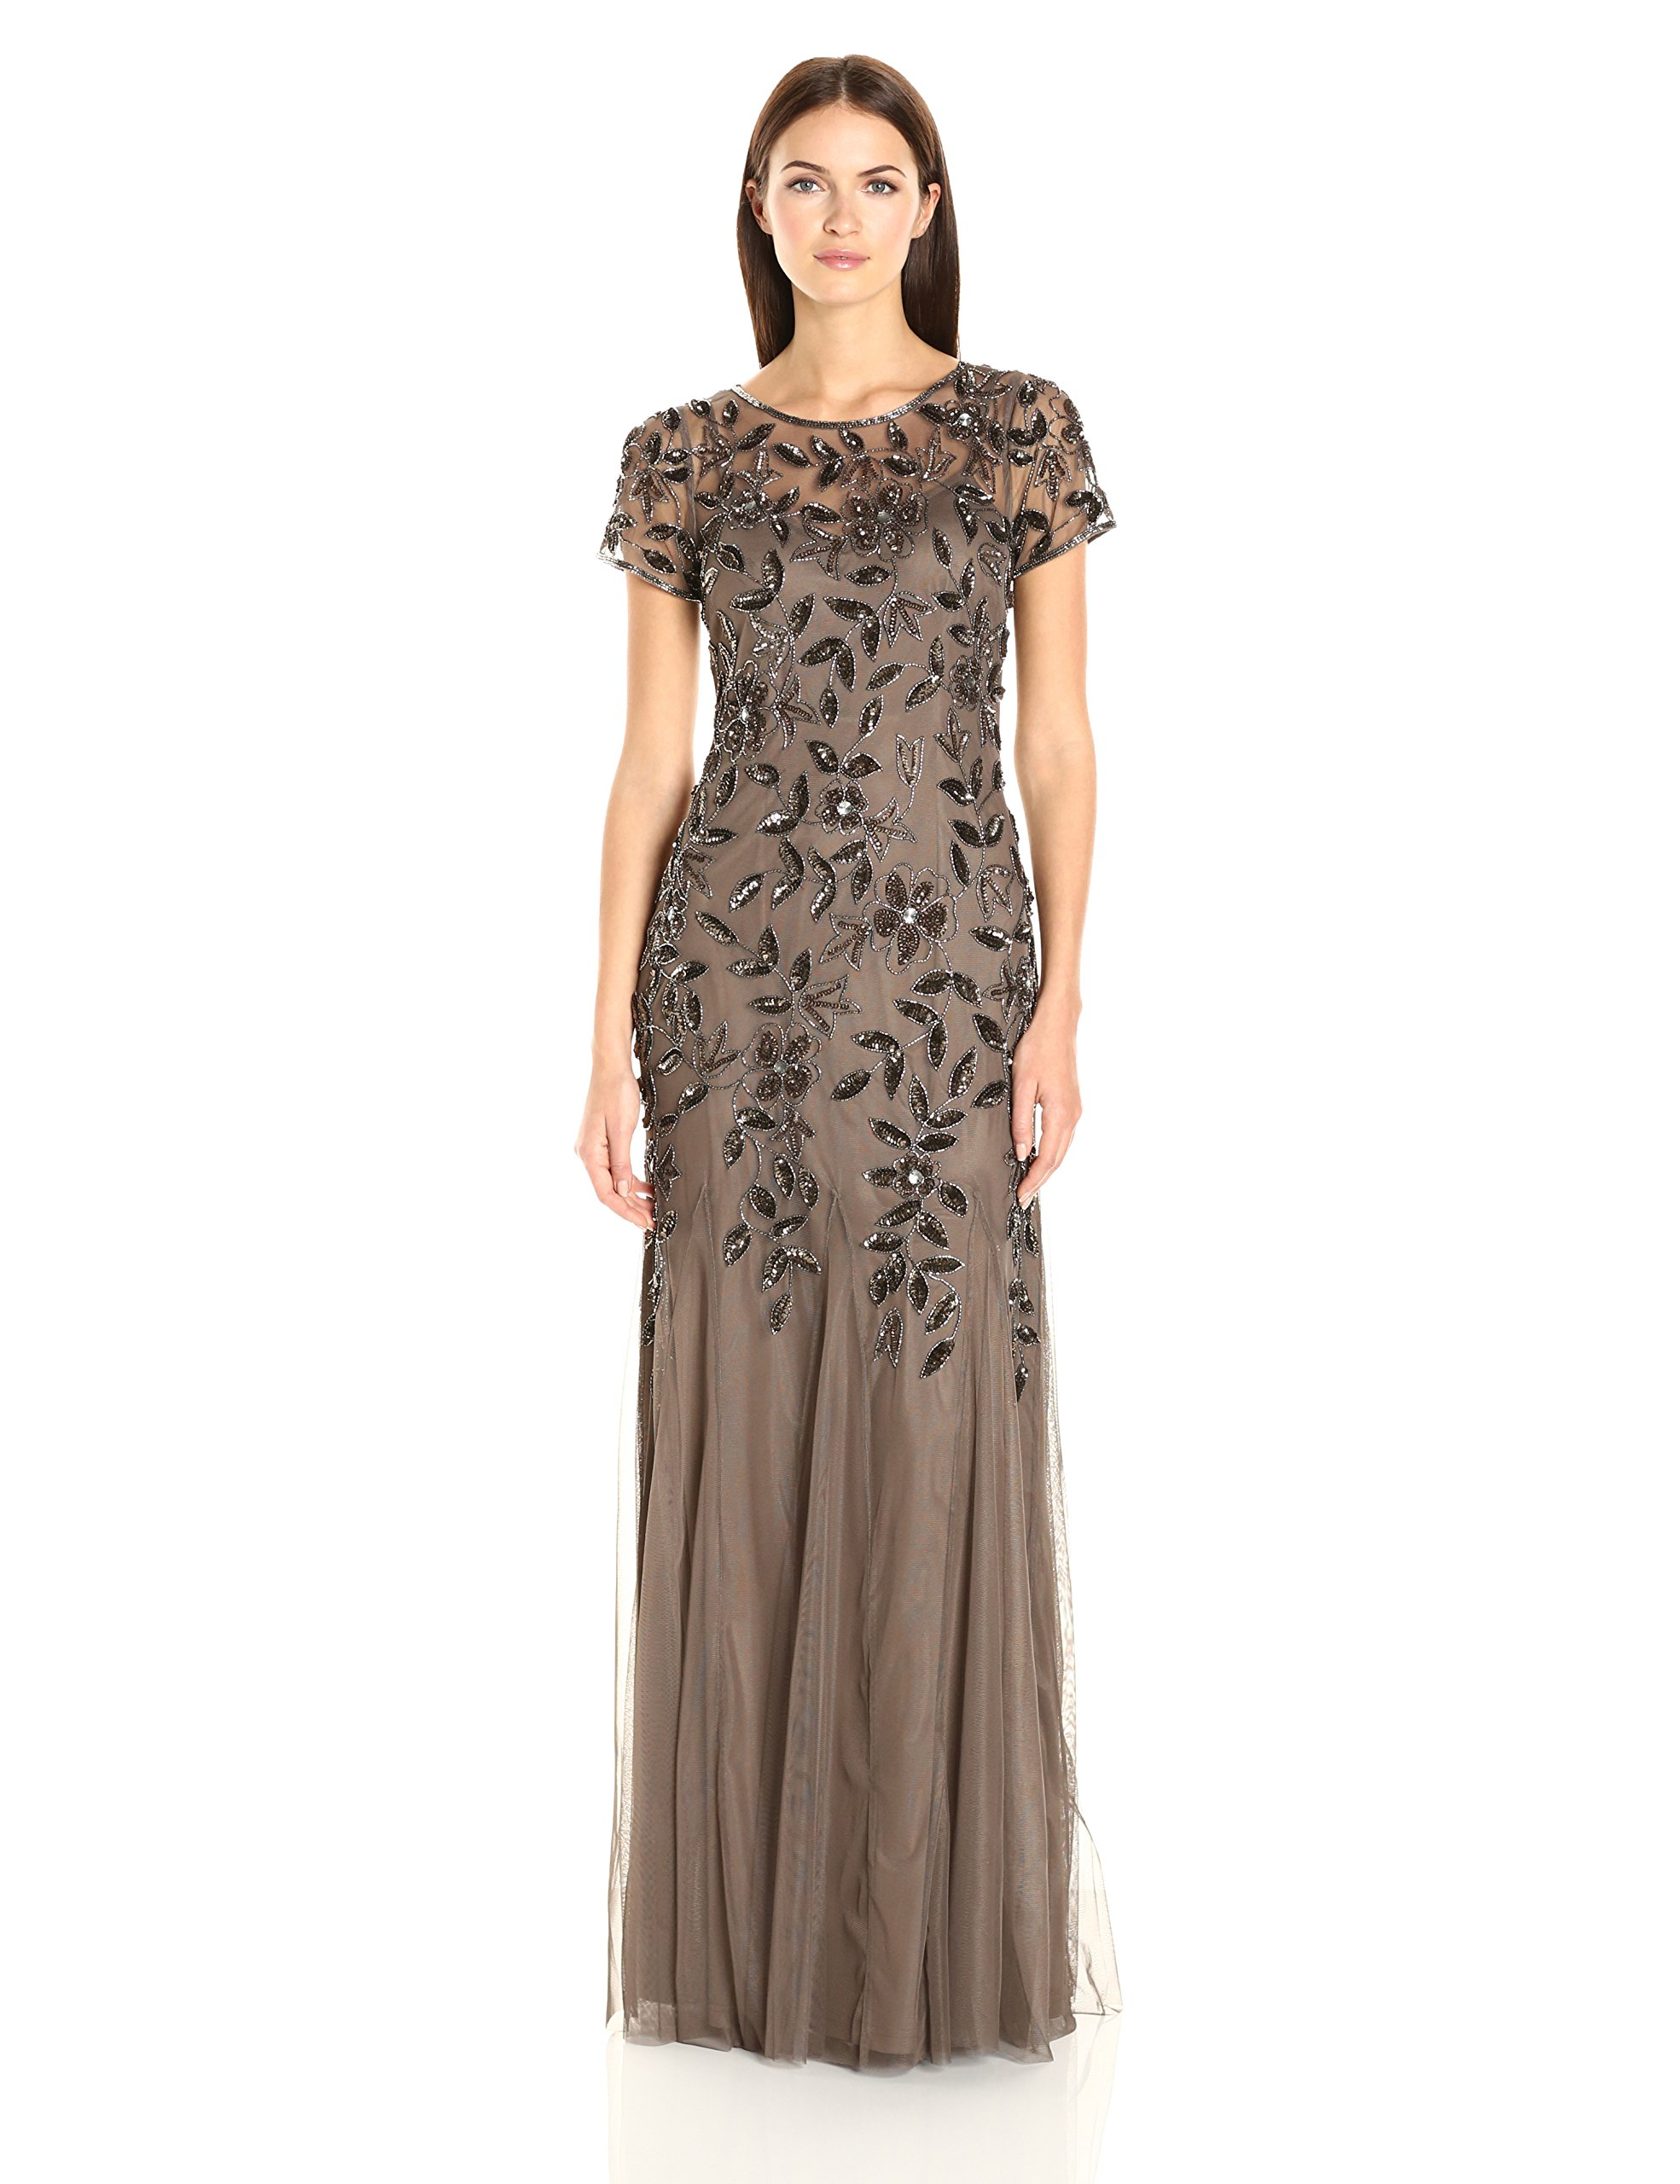 90239cb1c1 Adrianna Papell Floral Beaded Godet Gown With Short Sleeves – DACC